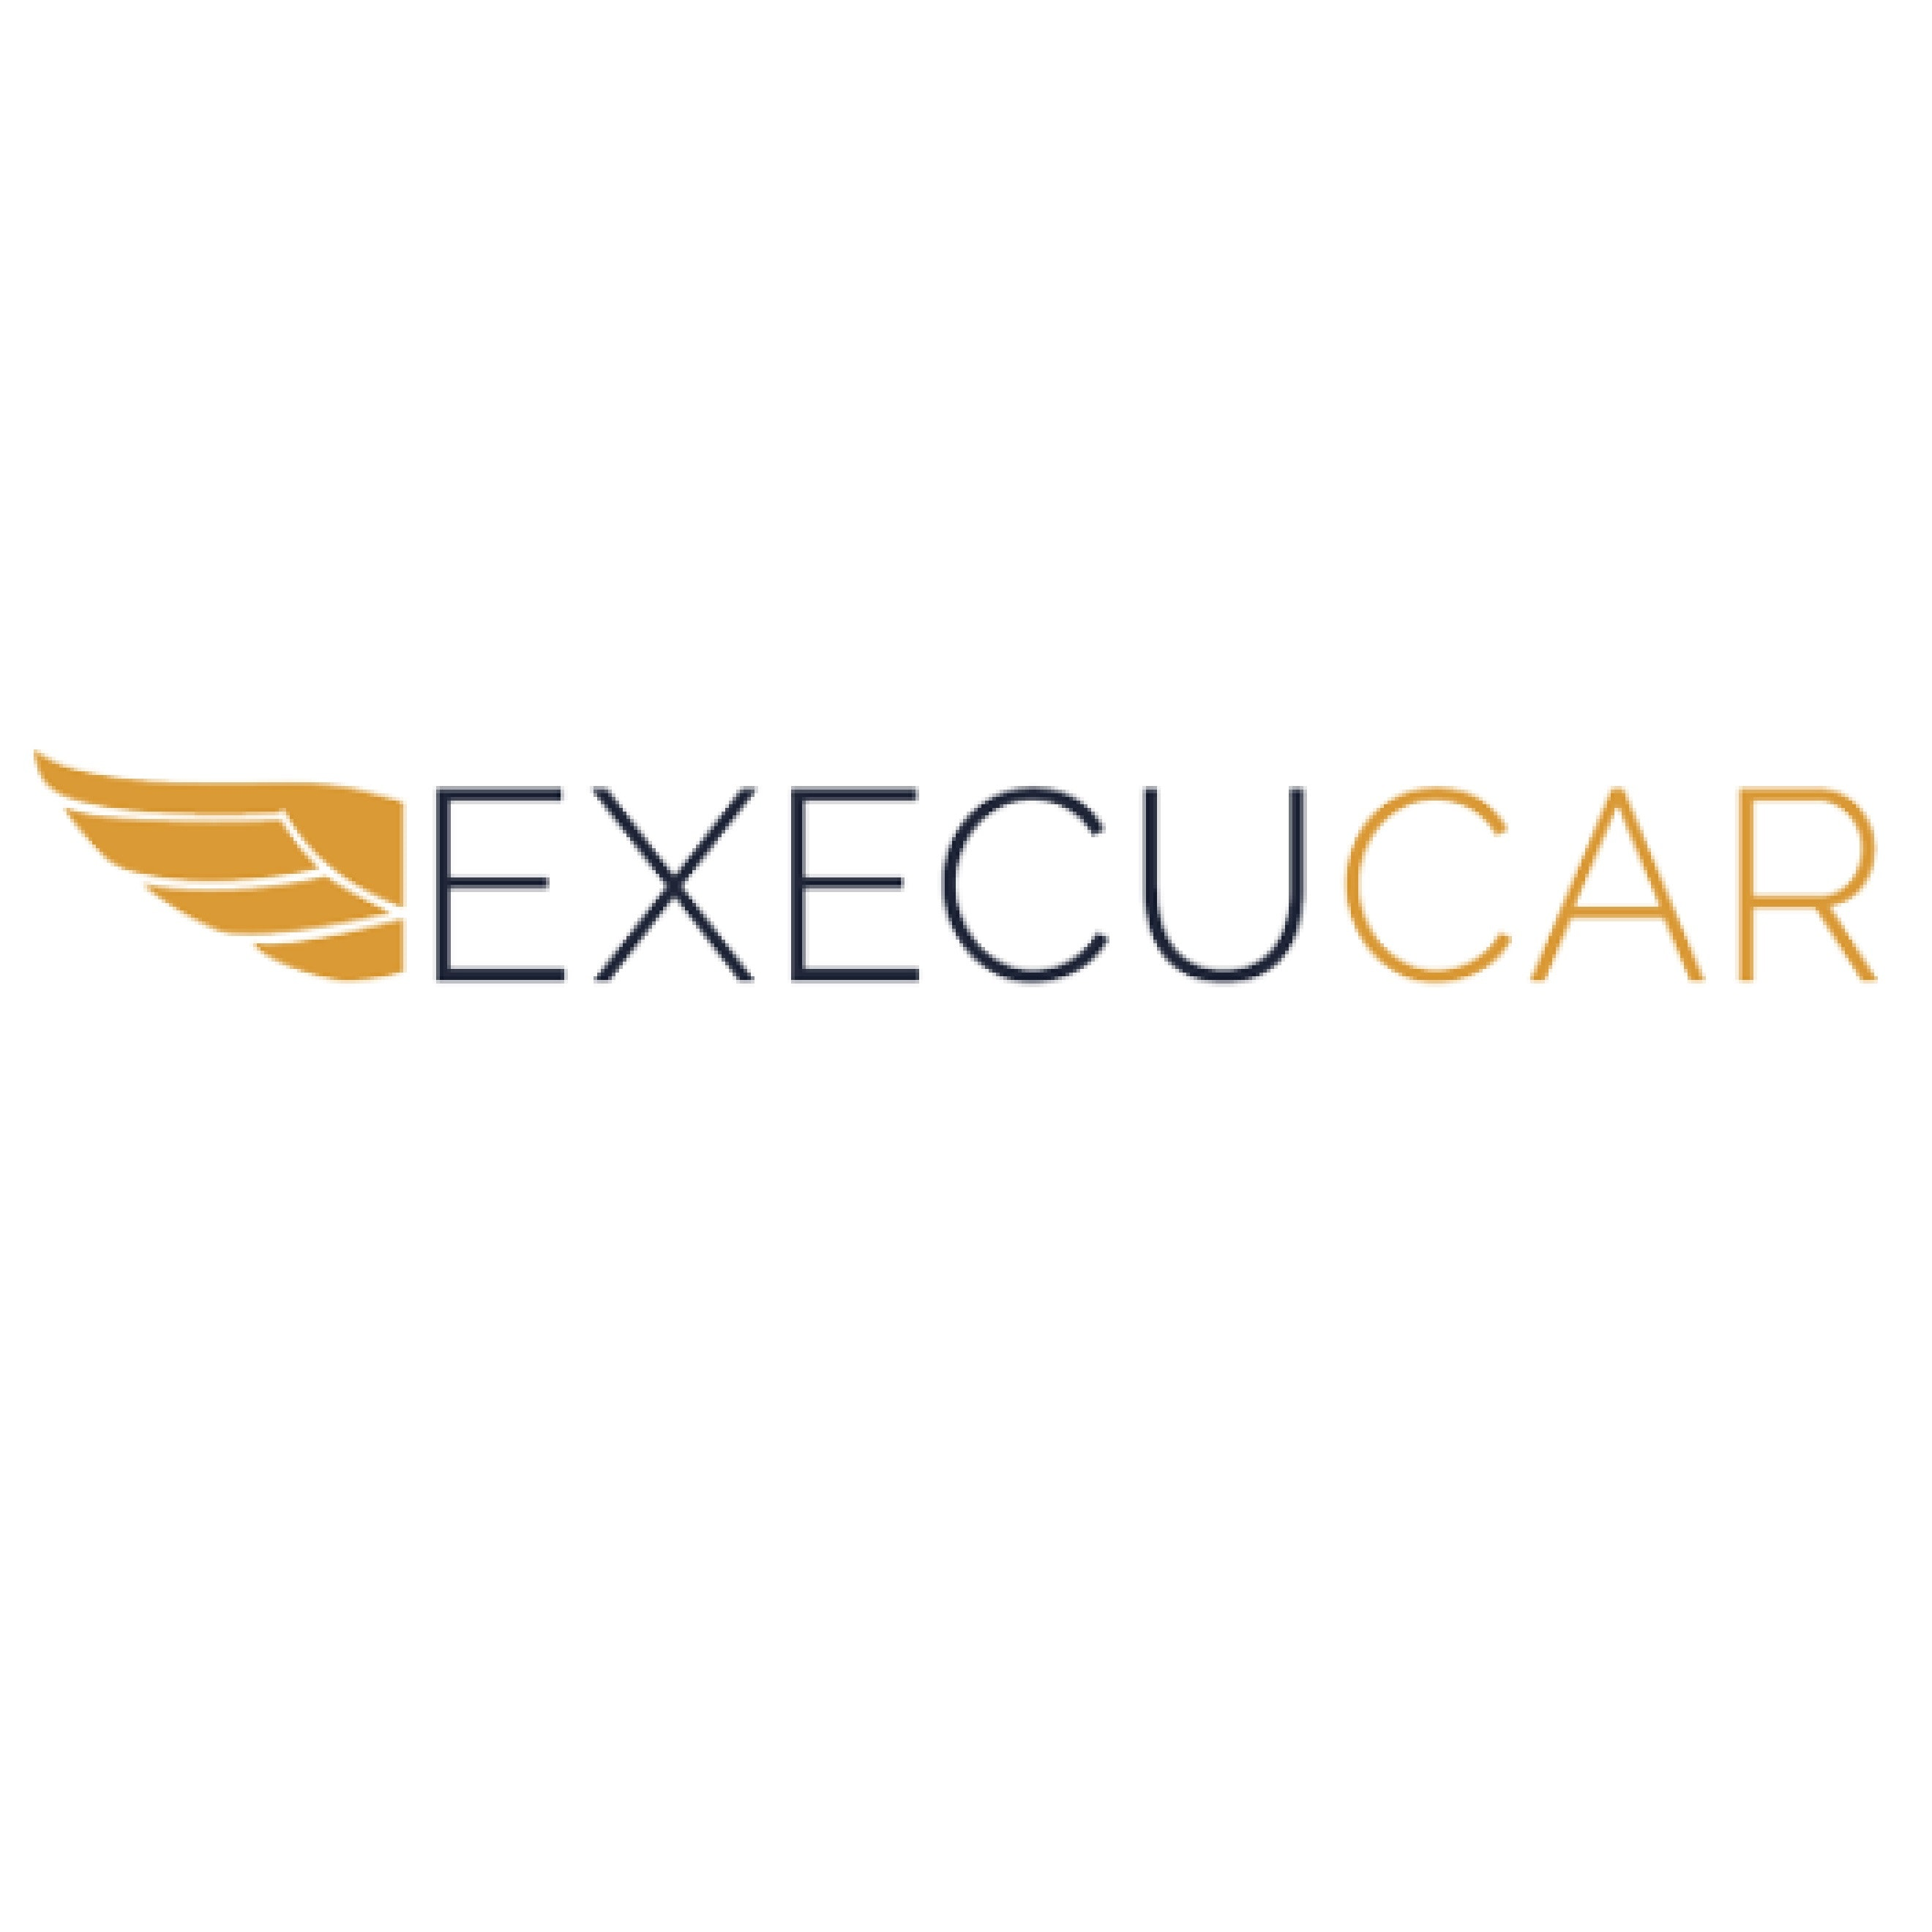 Execucar - Luxury logo